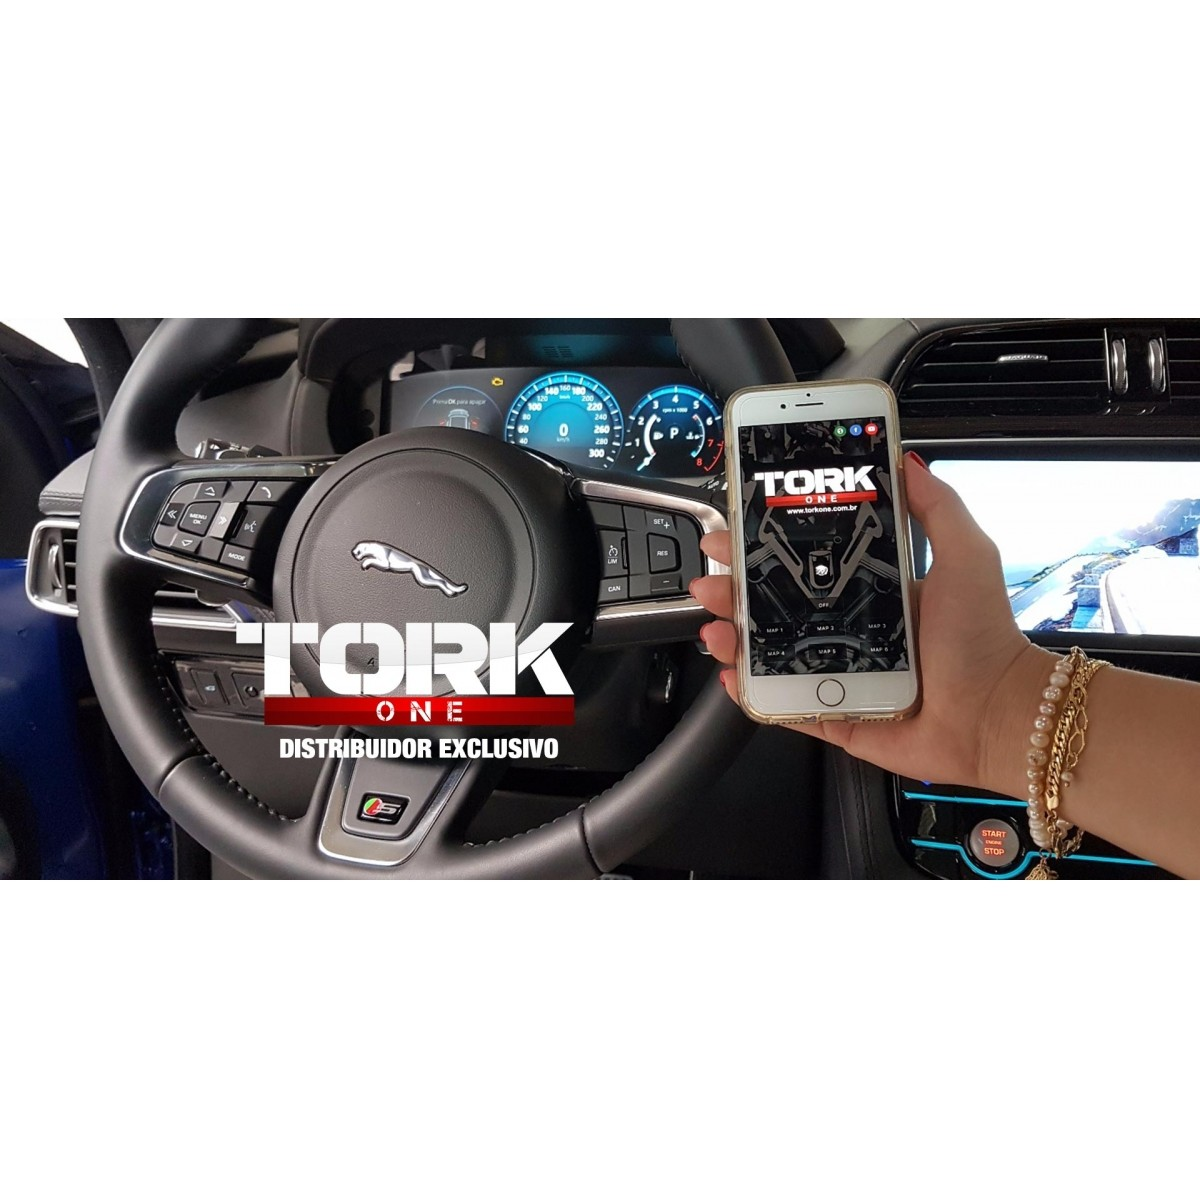 Gás Pedal - Troller - Tork One c/s Bluetooth